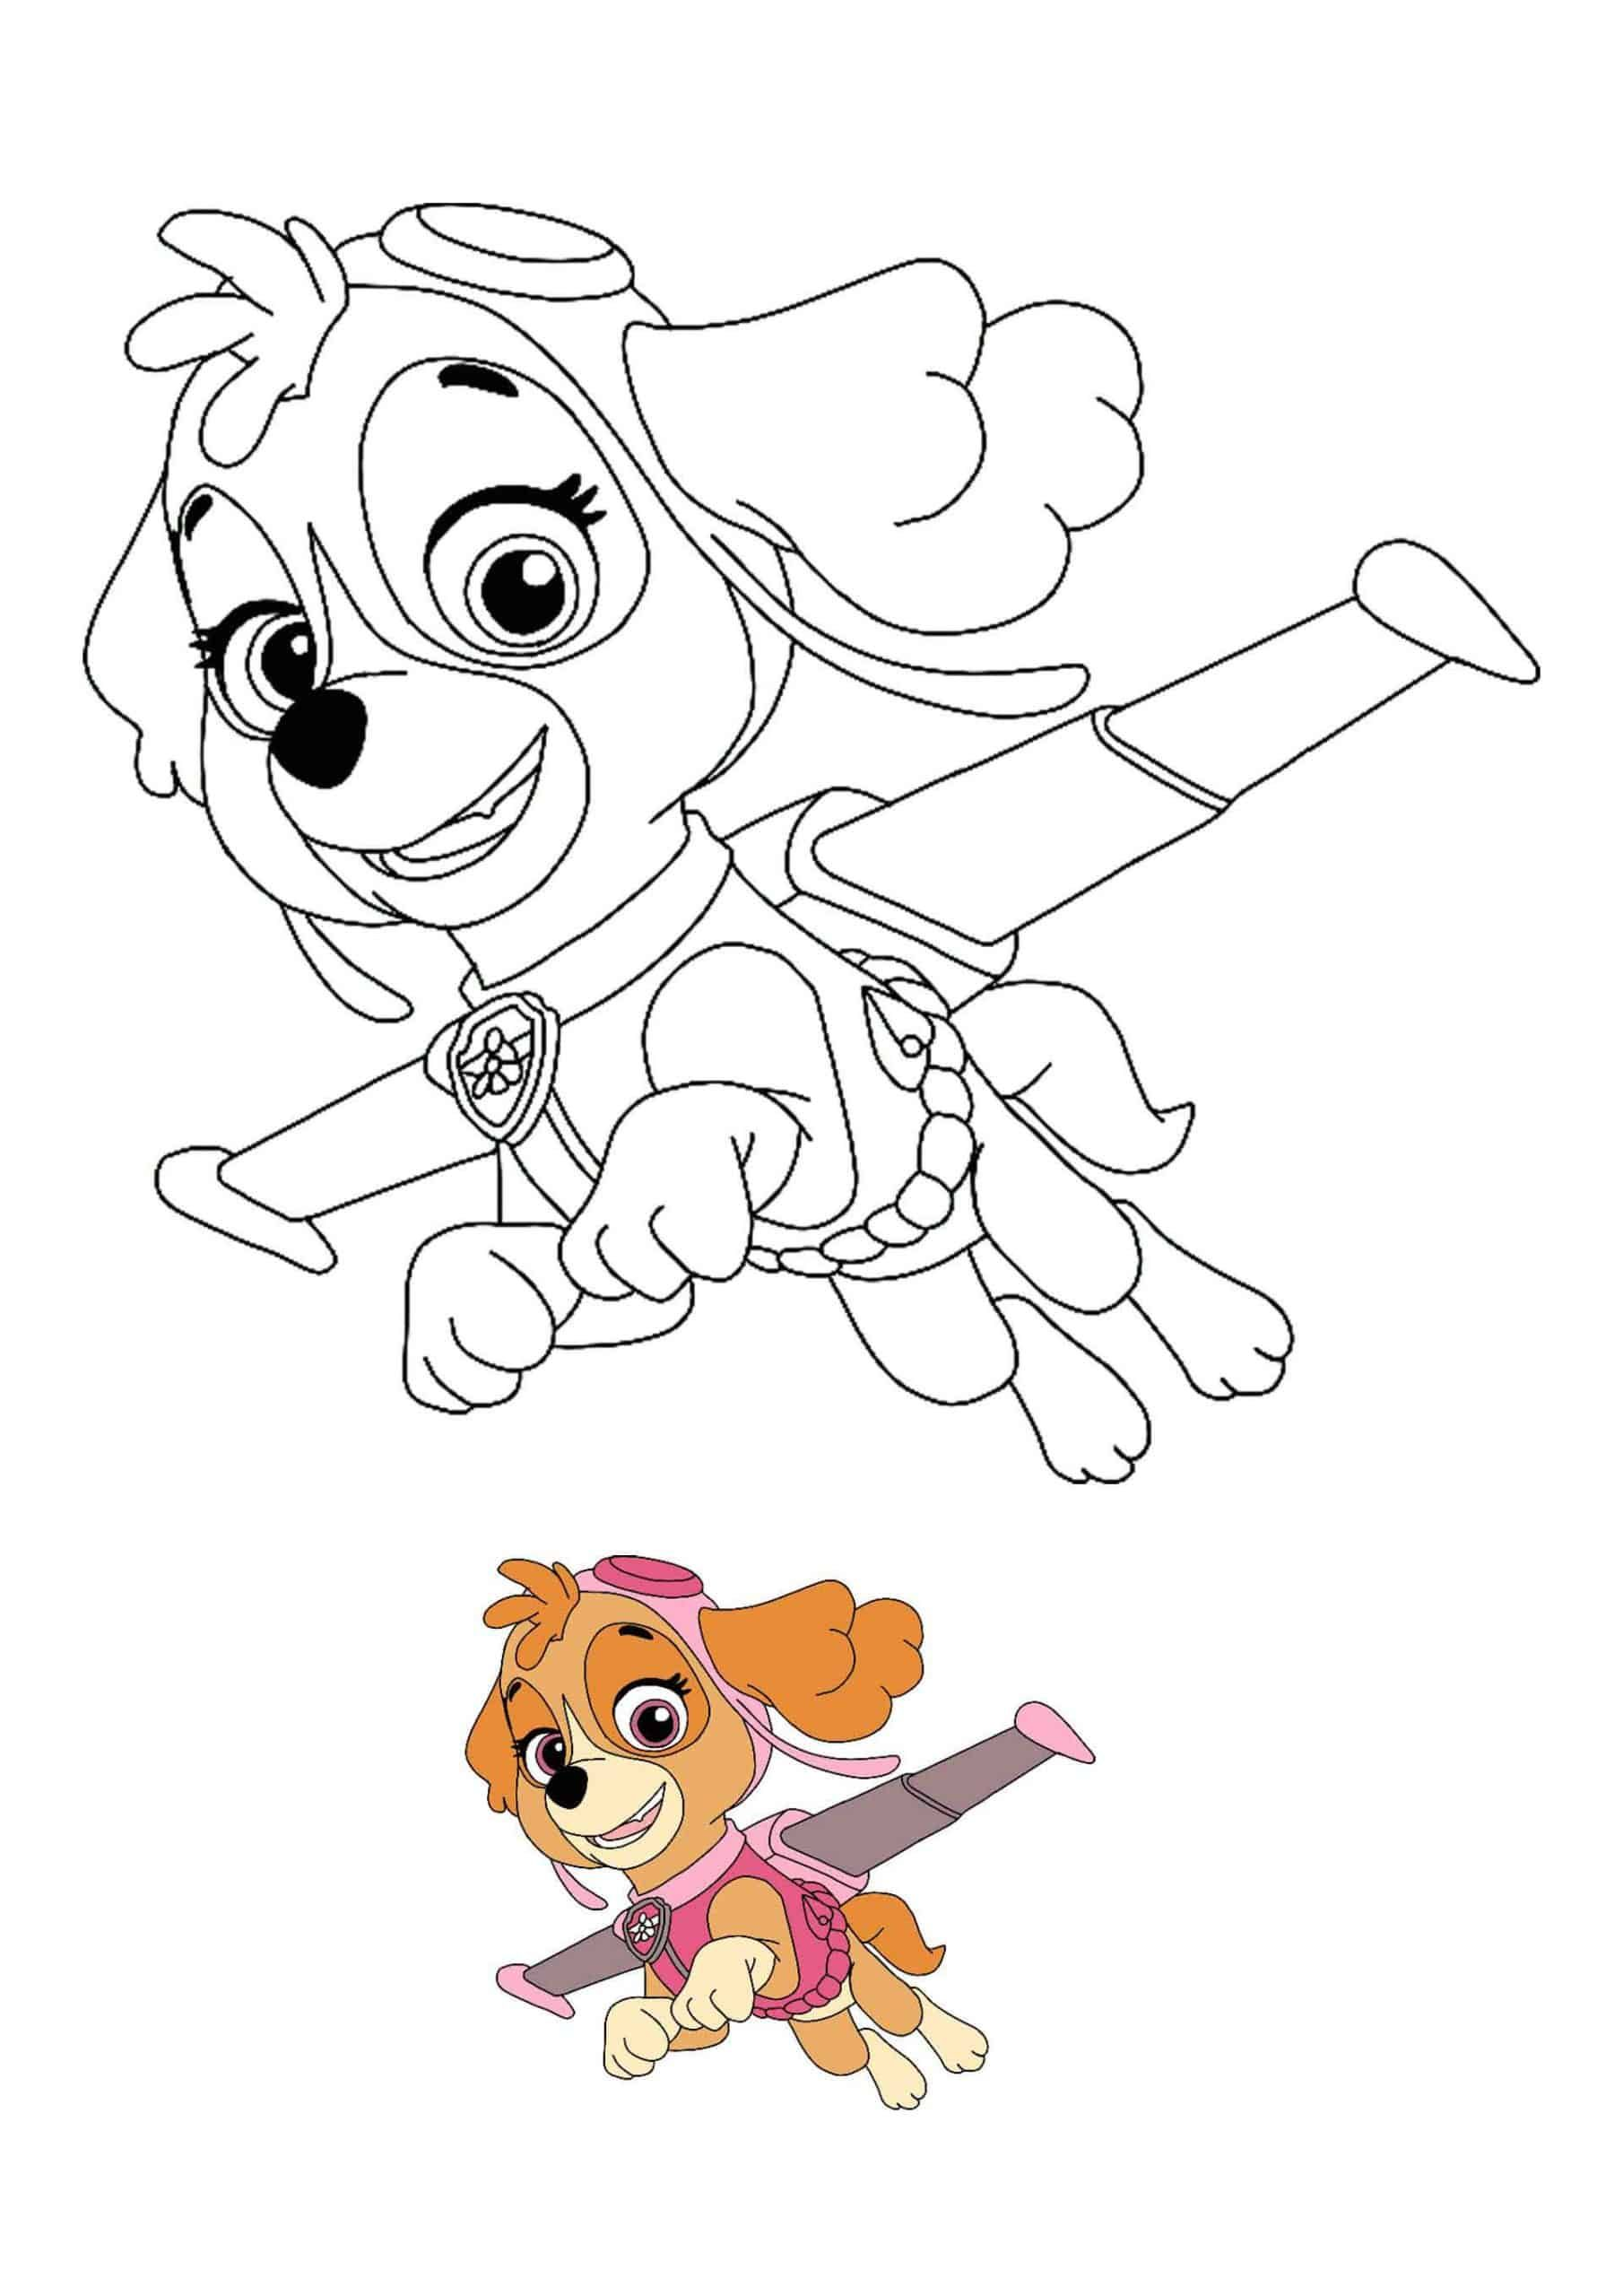 Paw Patrol Skye Coloring Pages  Paw patrol coloring pages, Paw